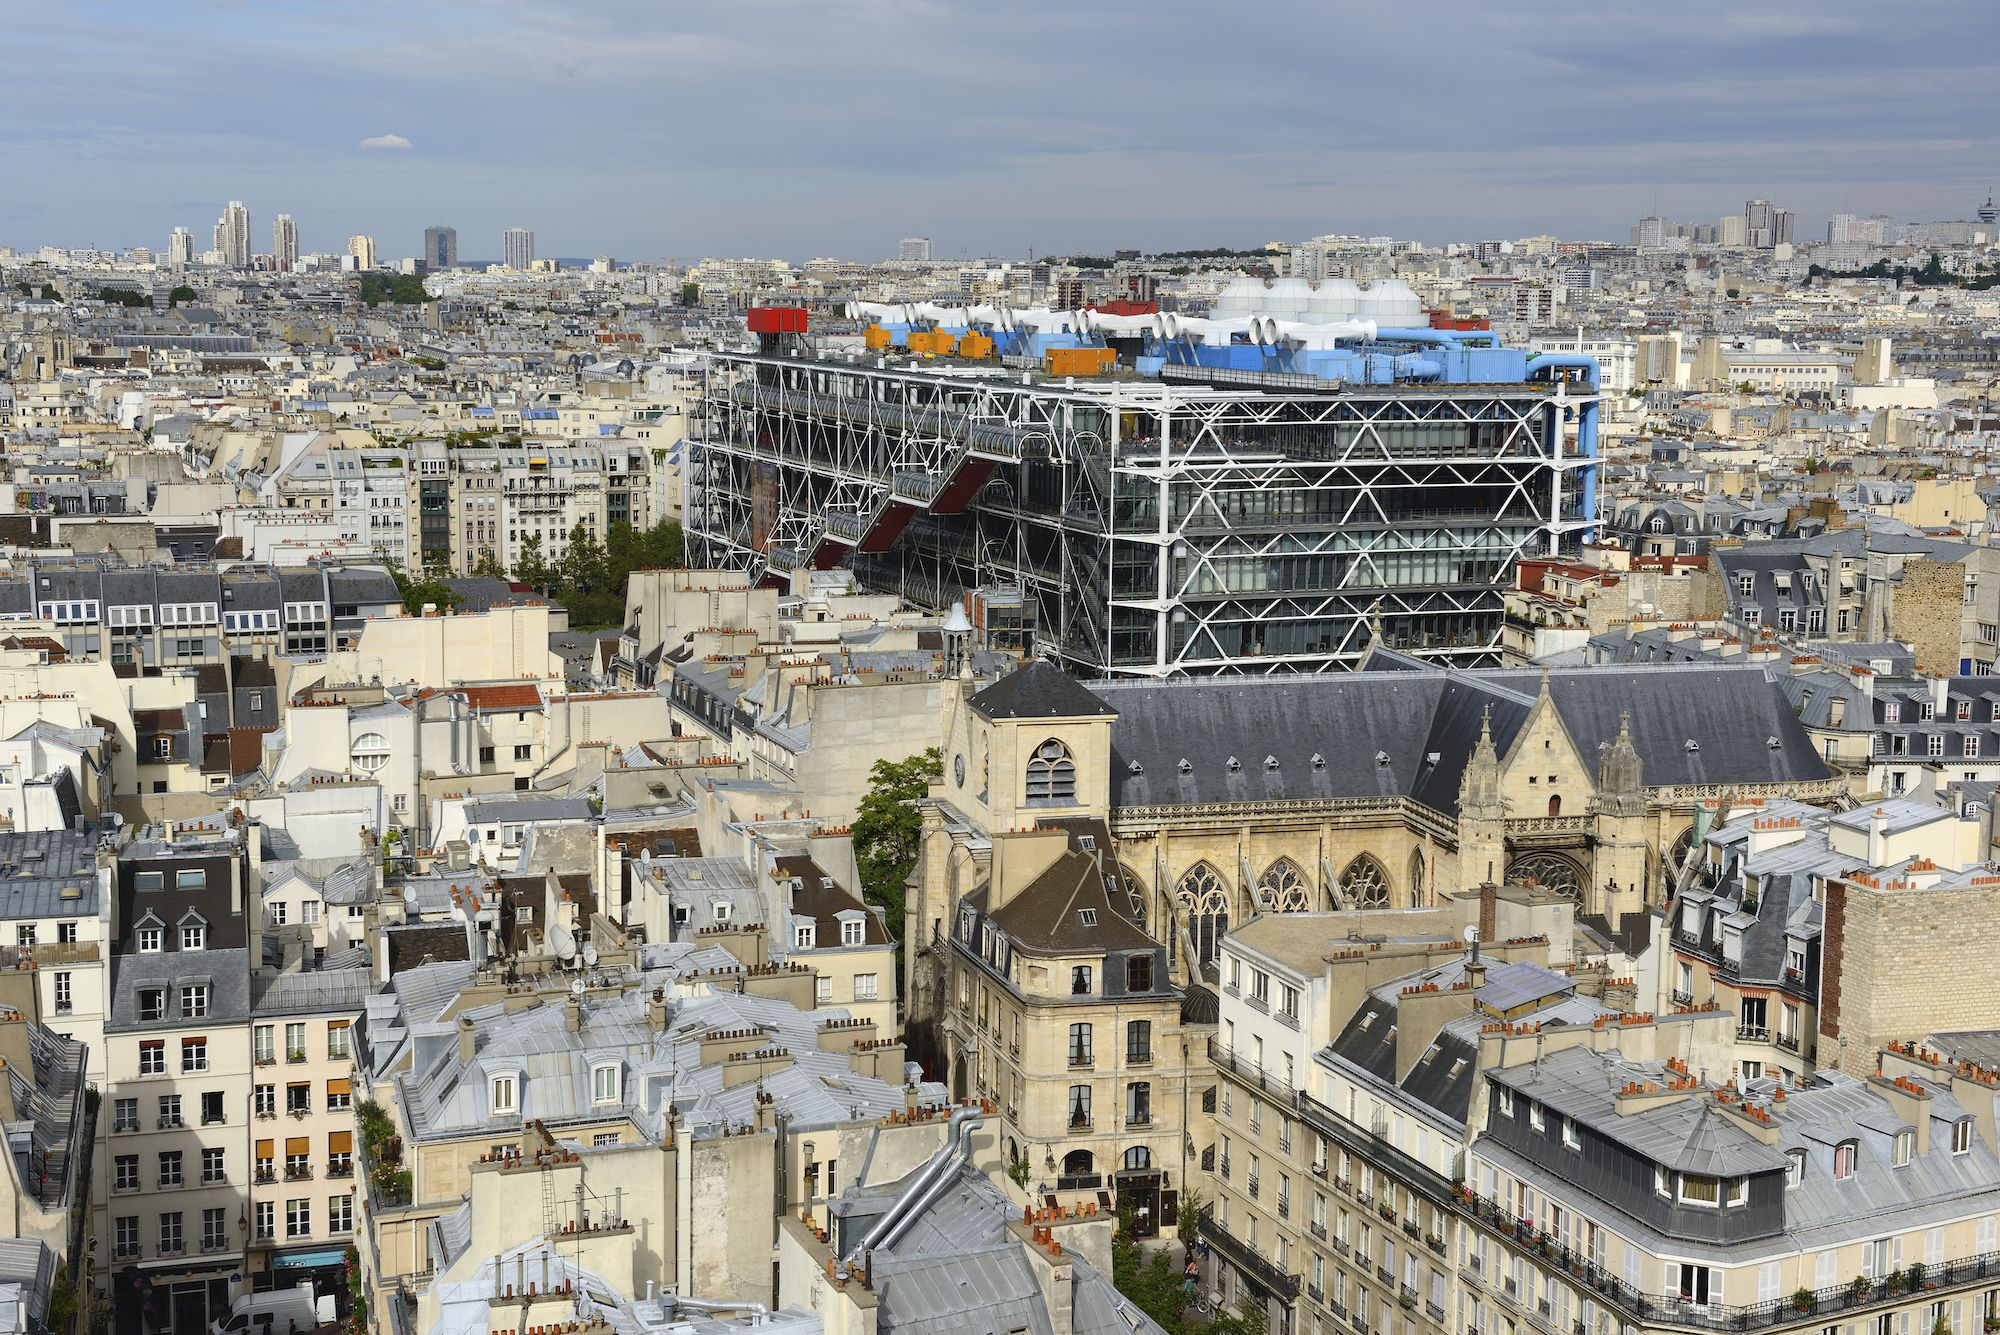 View on the Church of Saint-Merri and the Centre Georges Pompidou, in the Beaubourg area, from the Tour St-Jacques. This 52-metre Flamboyant Gothic tower, leveled shortly after the French Revolution, is located in the 4th arrondissement of Paris.